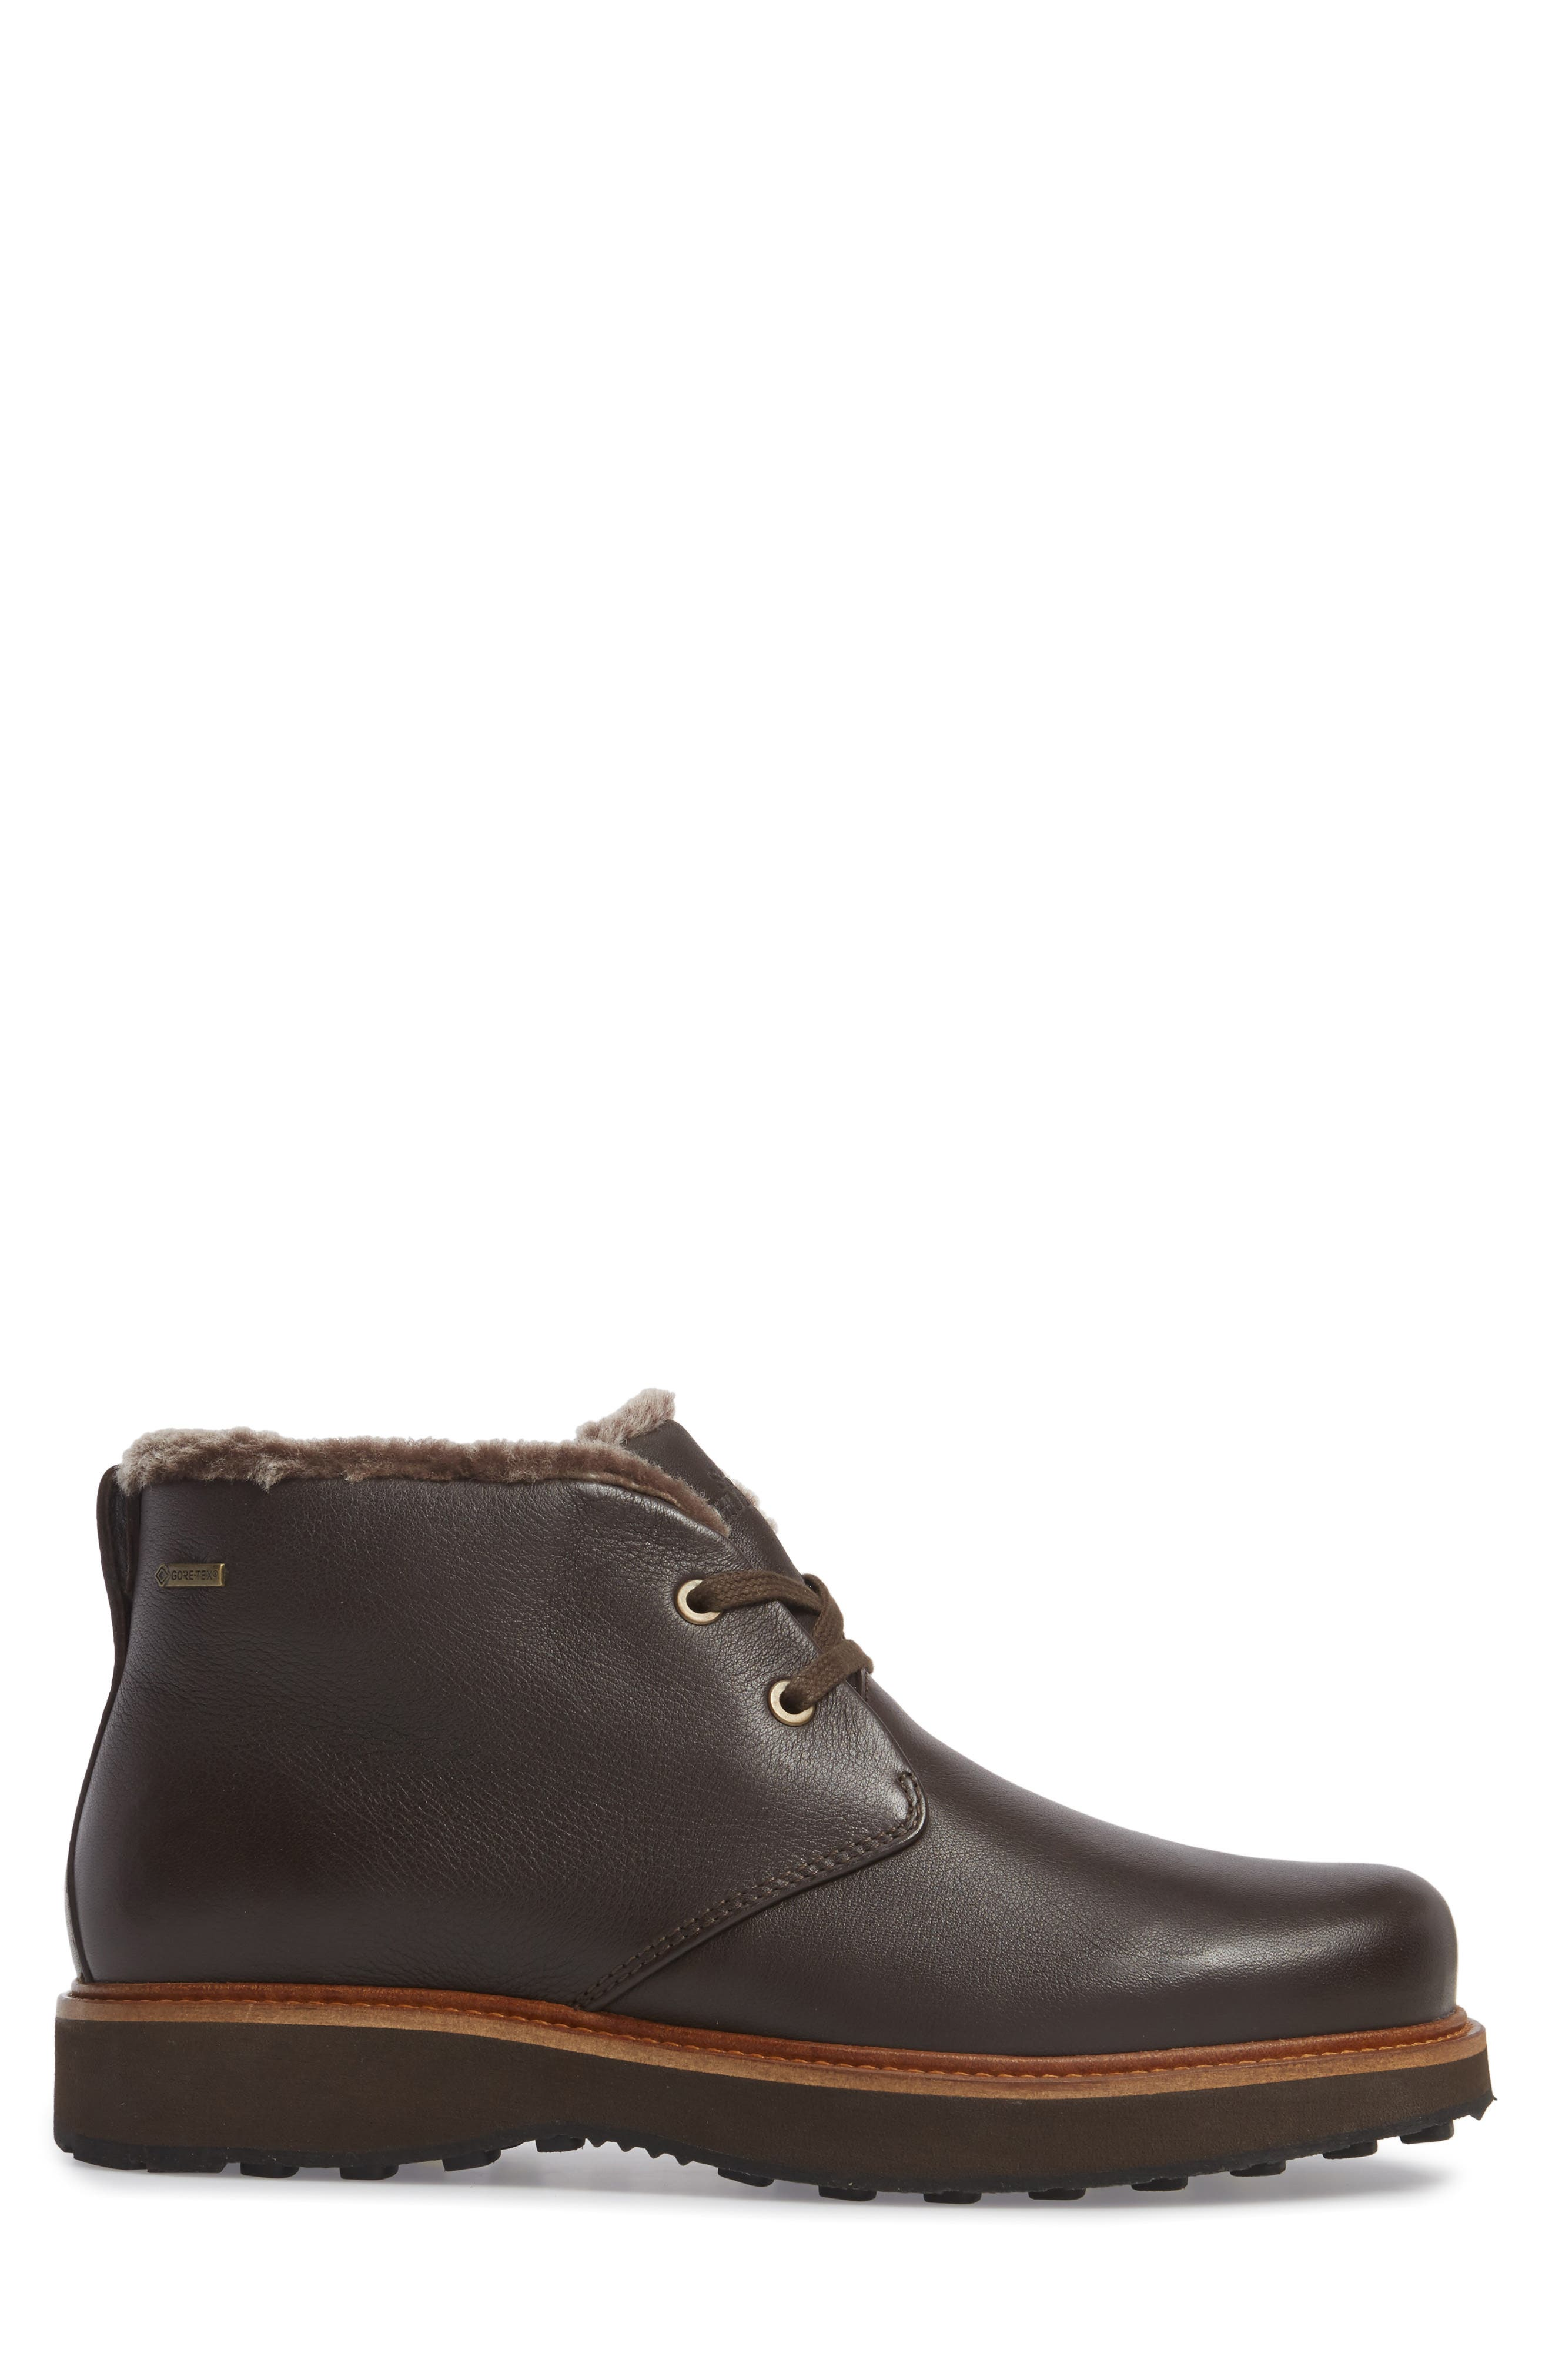 Winter's Day Waterproof Gore-Tex<sup>®</sup> Genuine Shearling Lined Chukka Boot,                             Alternate thumbnail 3, color,                             Espresso Brown Leather